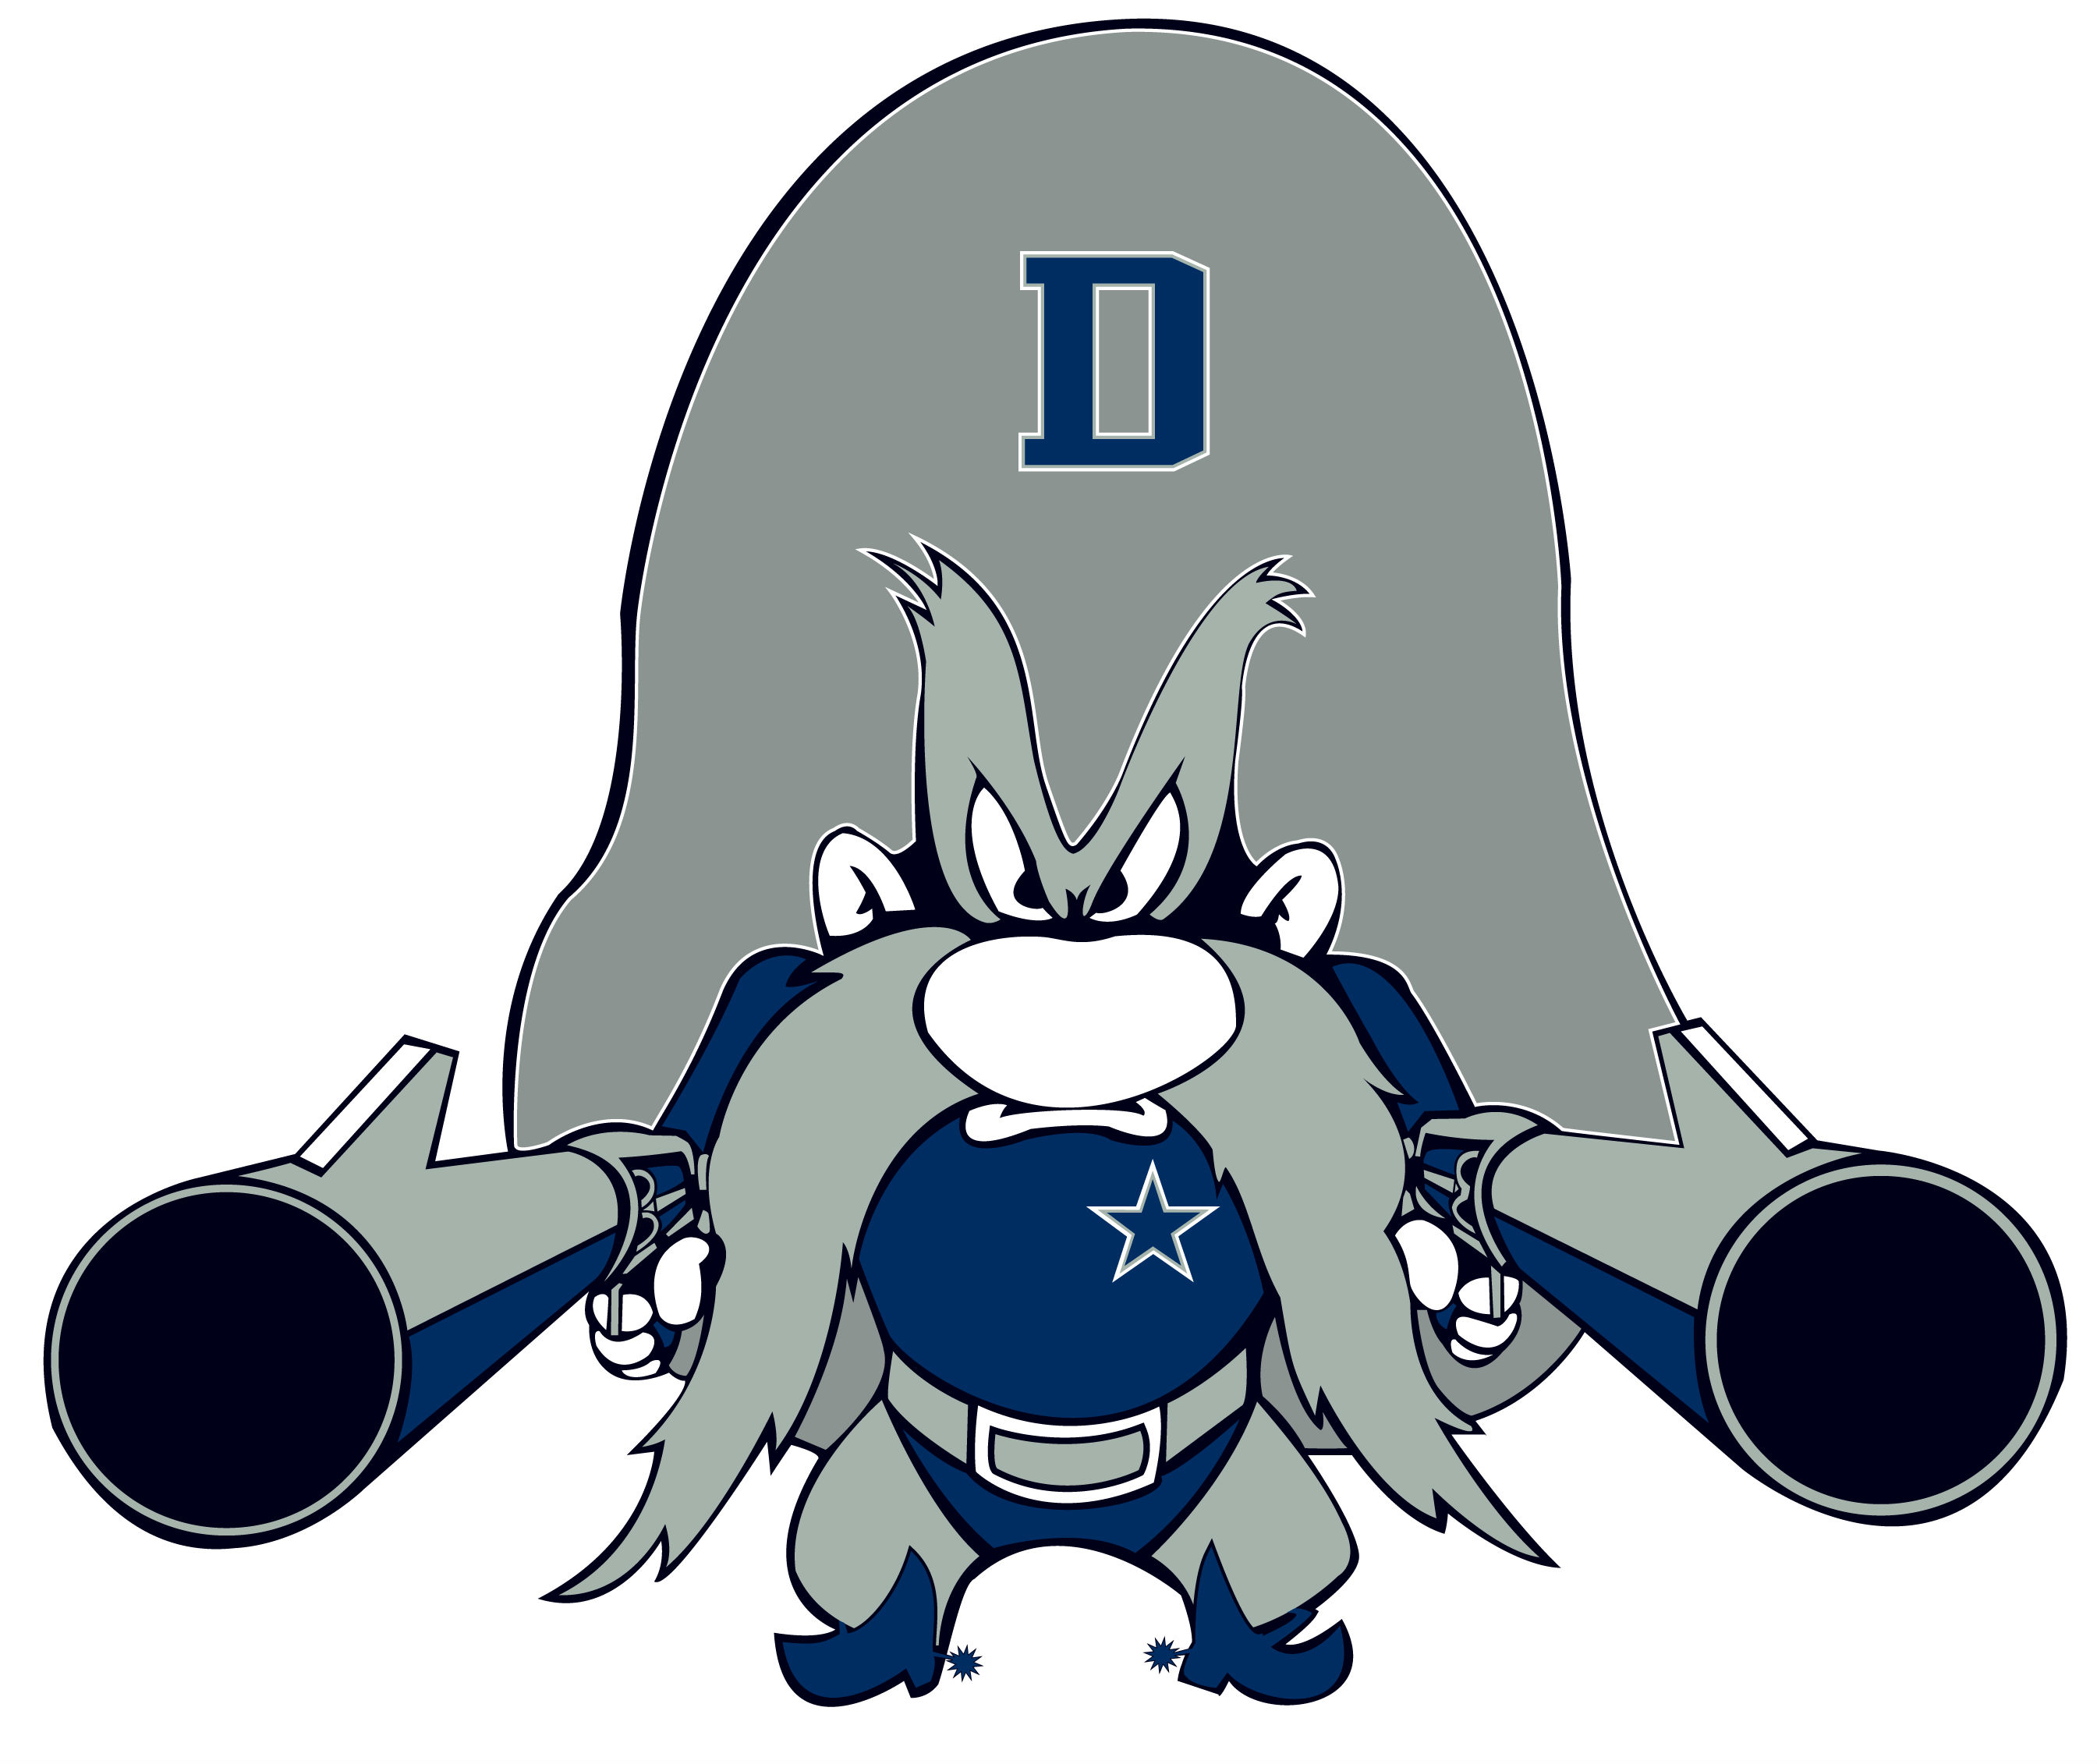 Dallas cowboys clipart cowboys football 8 jpg